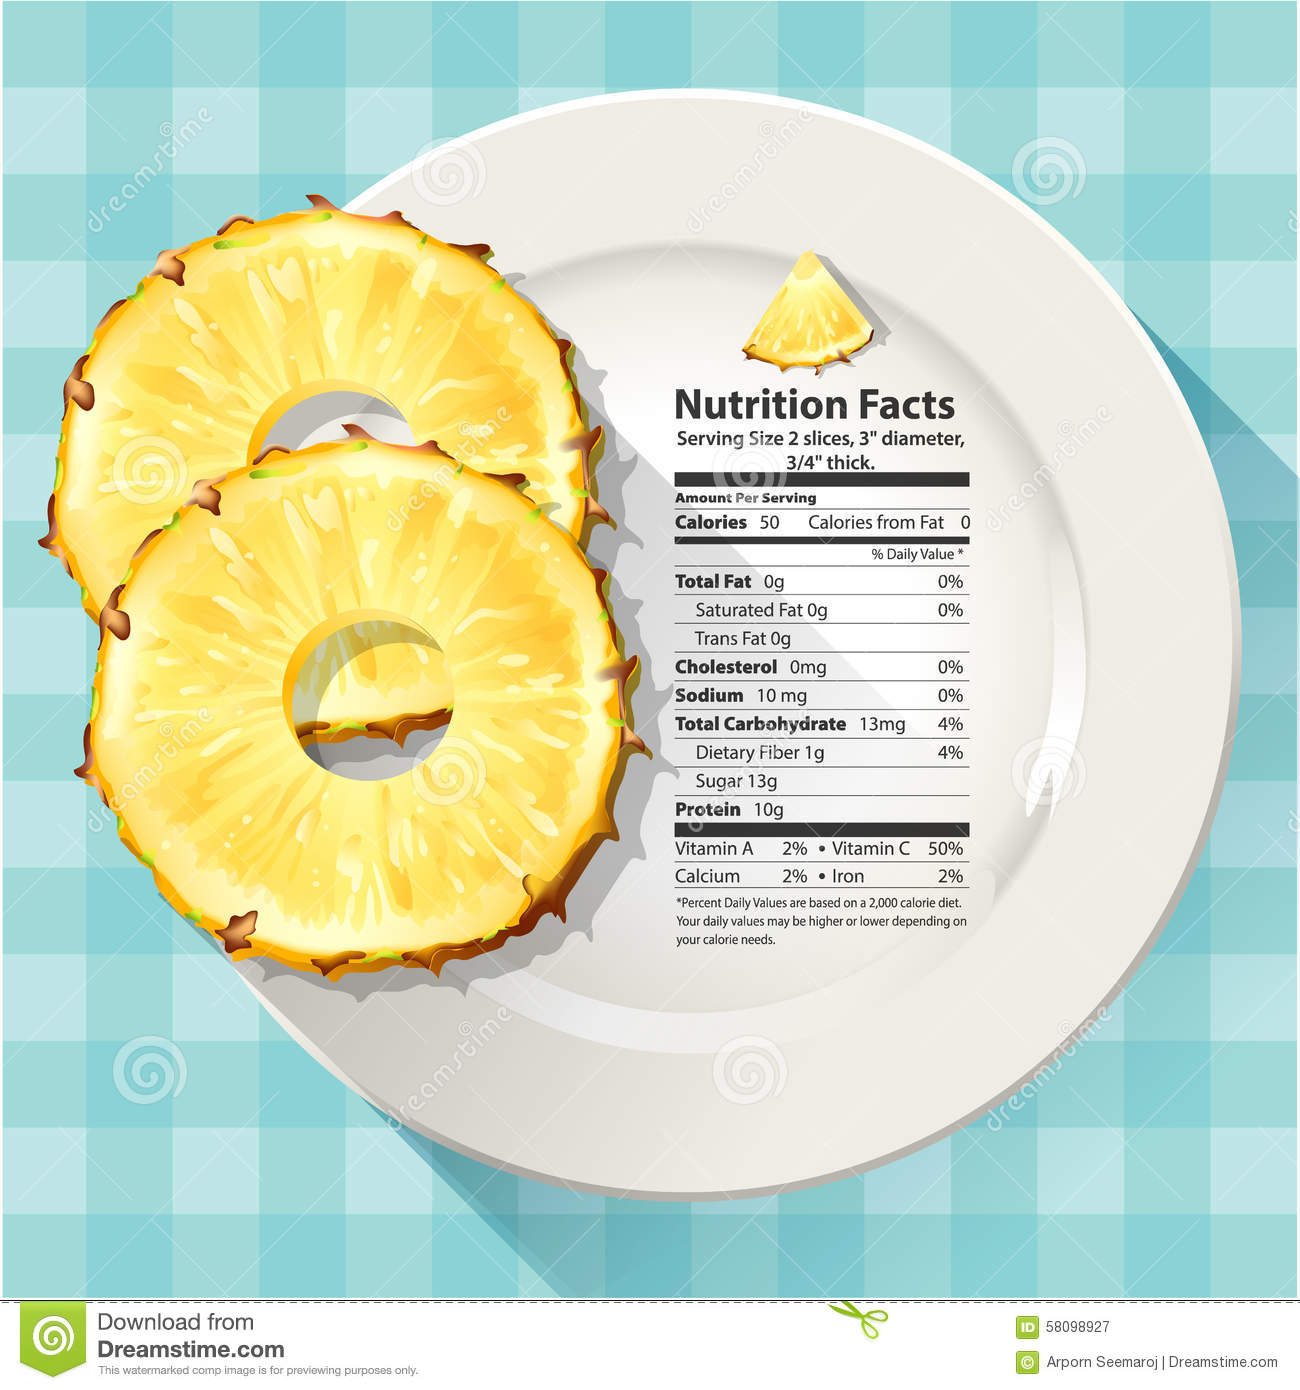 pineapple nutrition facts stock vector. illustration of carbohydrate